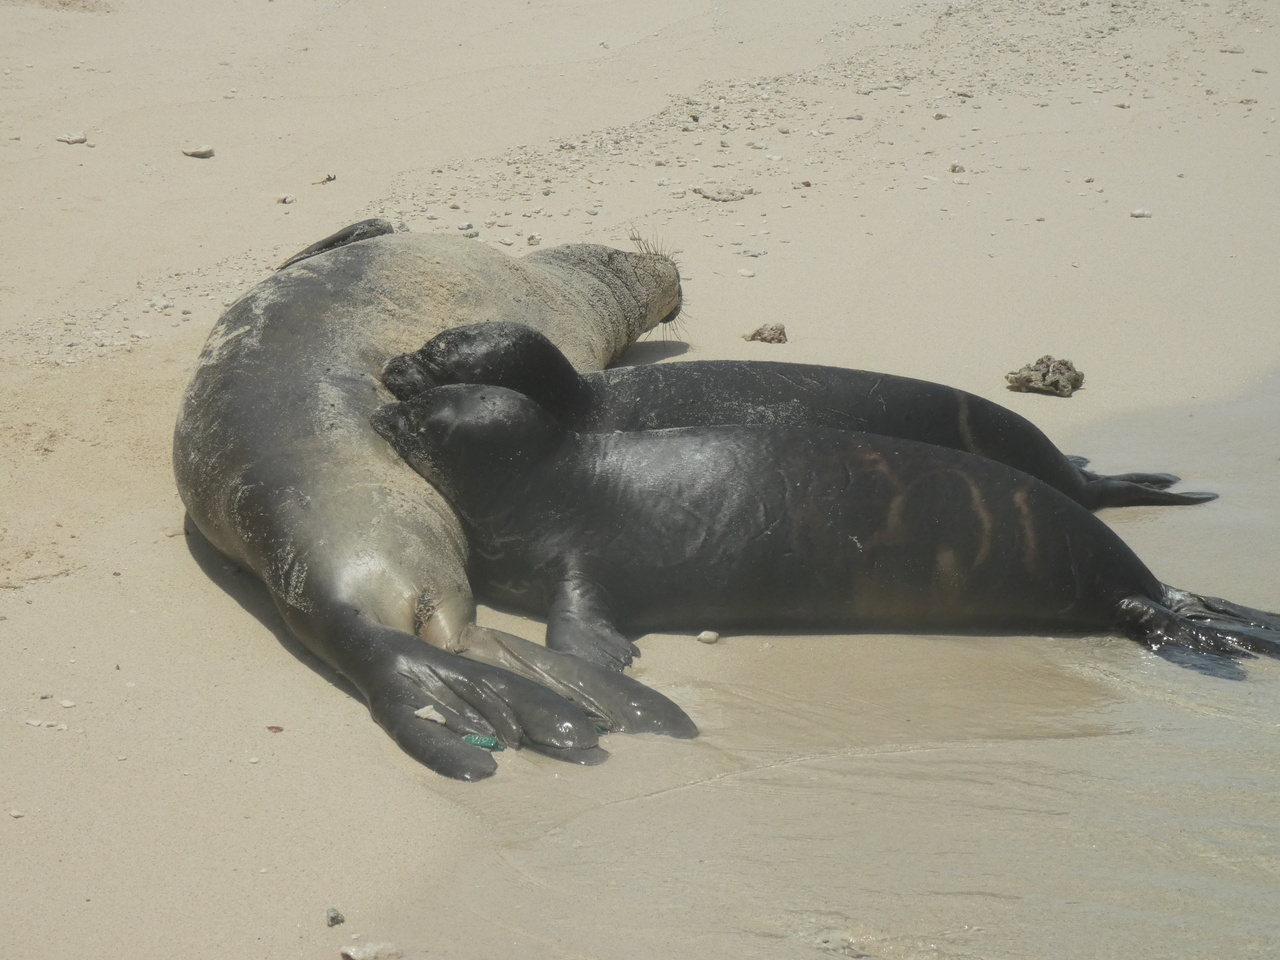 Hawaiian monk seal pup (possibly twins) nursing from mother, GV18.